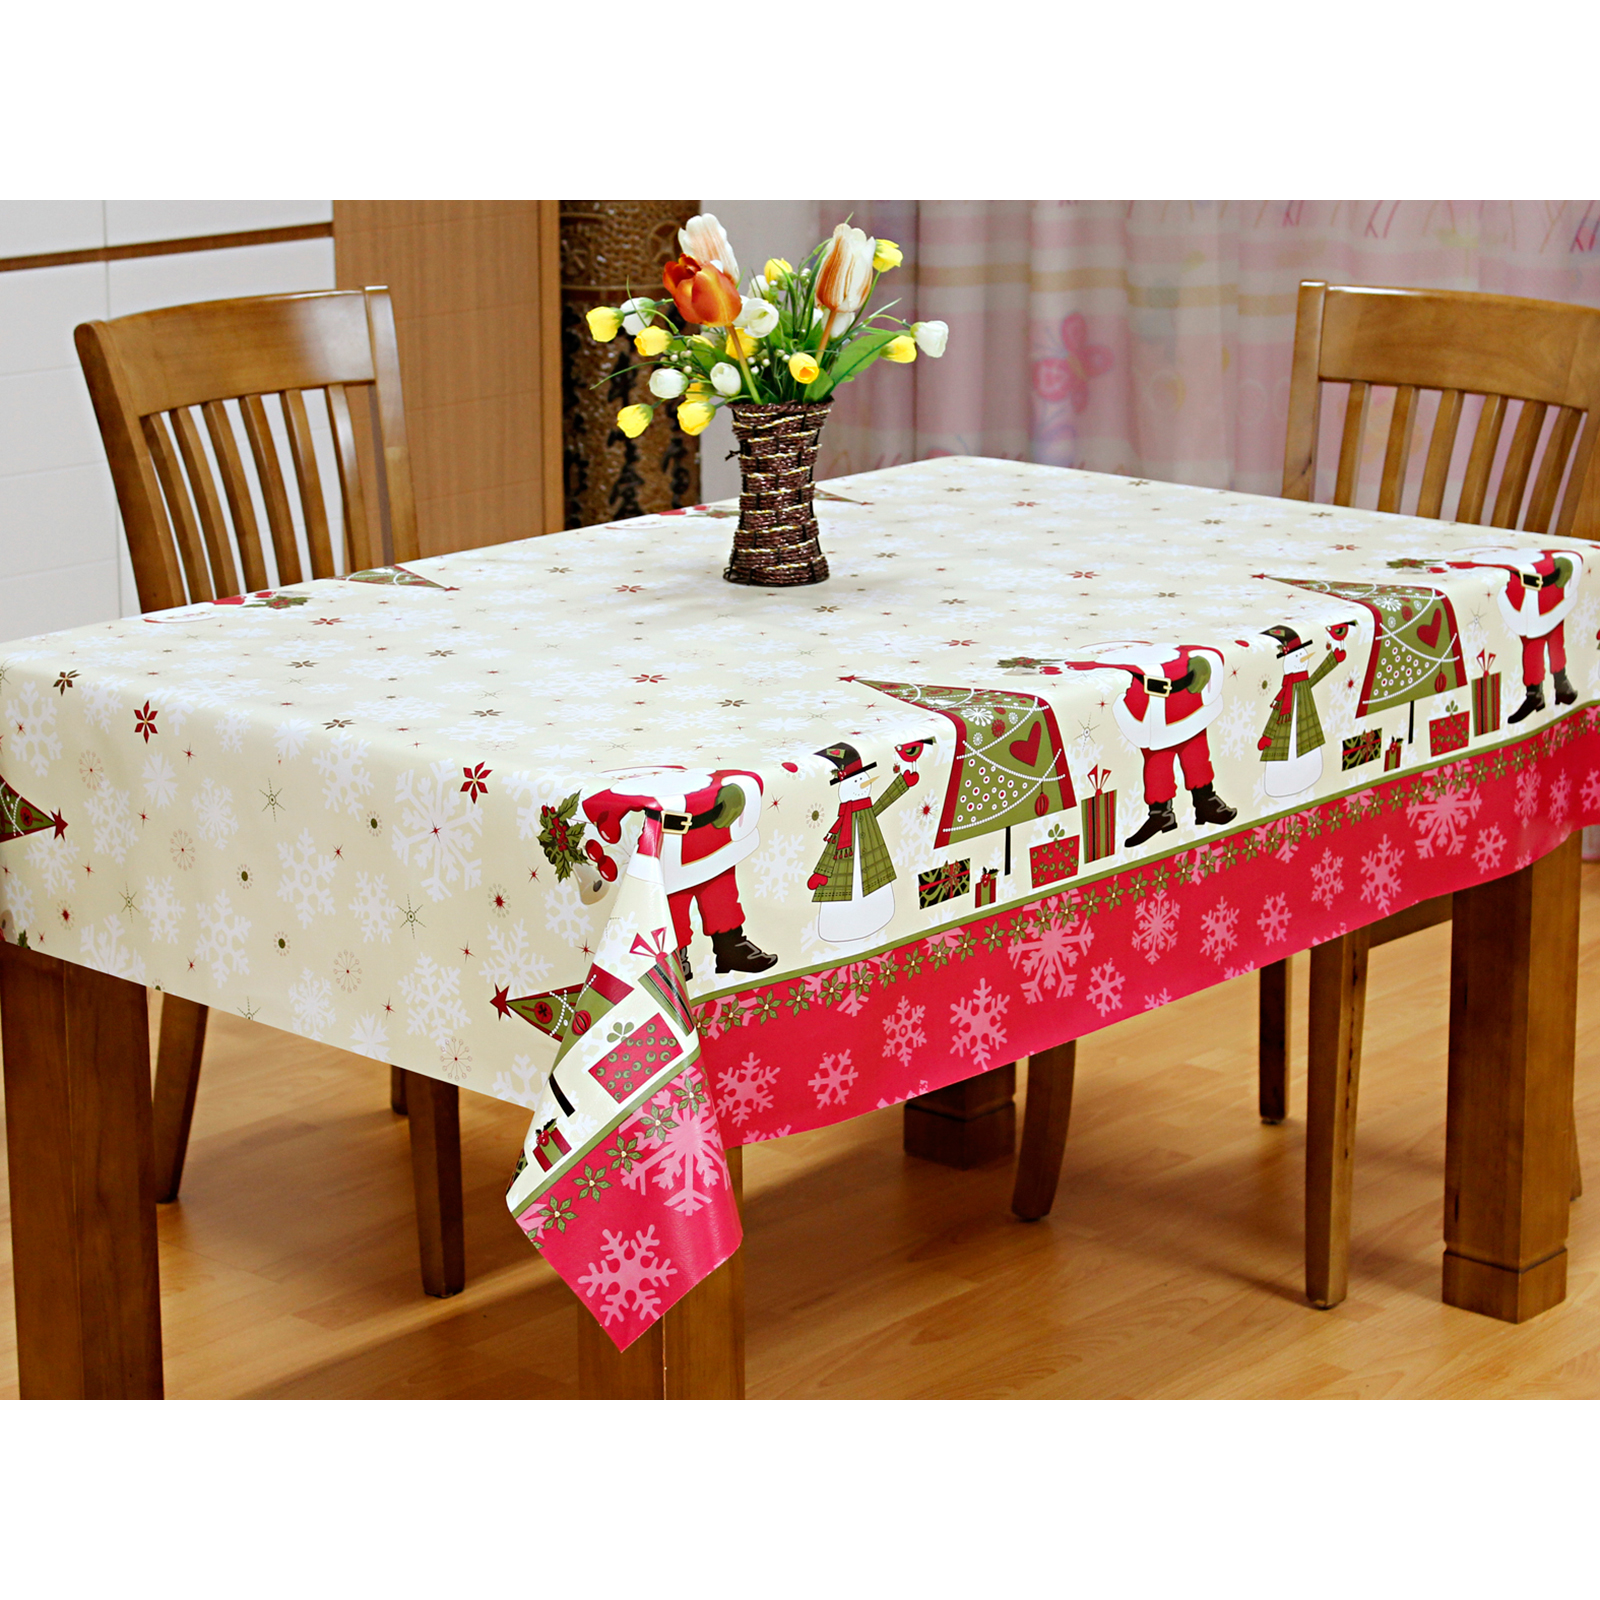 ... Red Cream Santas Wipe Clean Pvc Vinyl Tablecloth Table Cover Thumbnail  3 ...